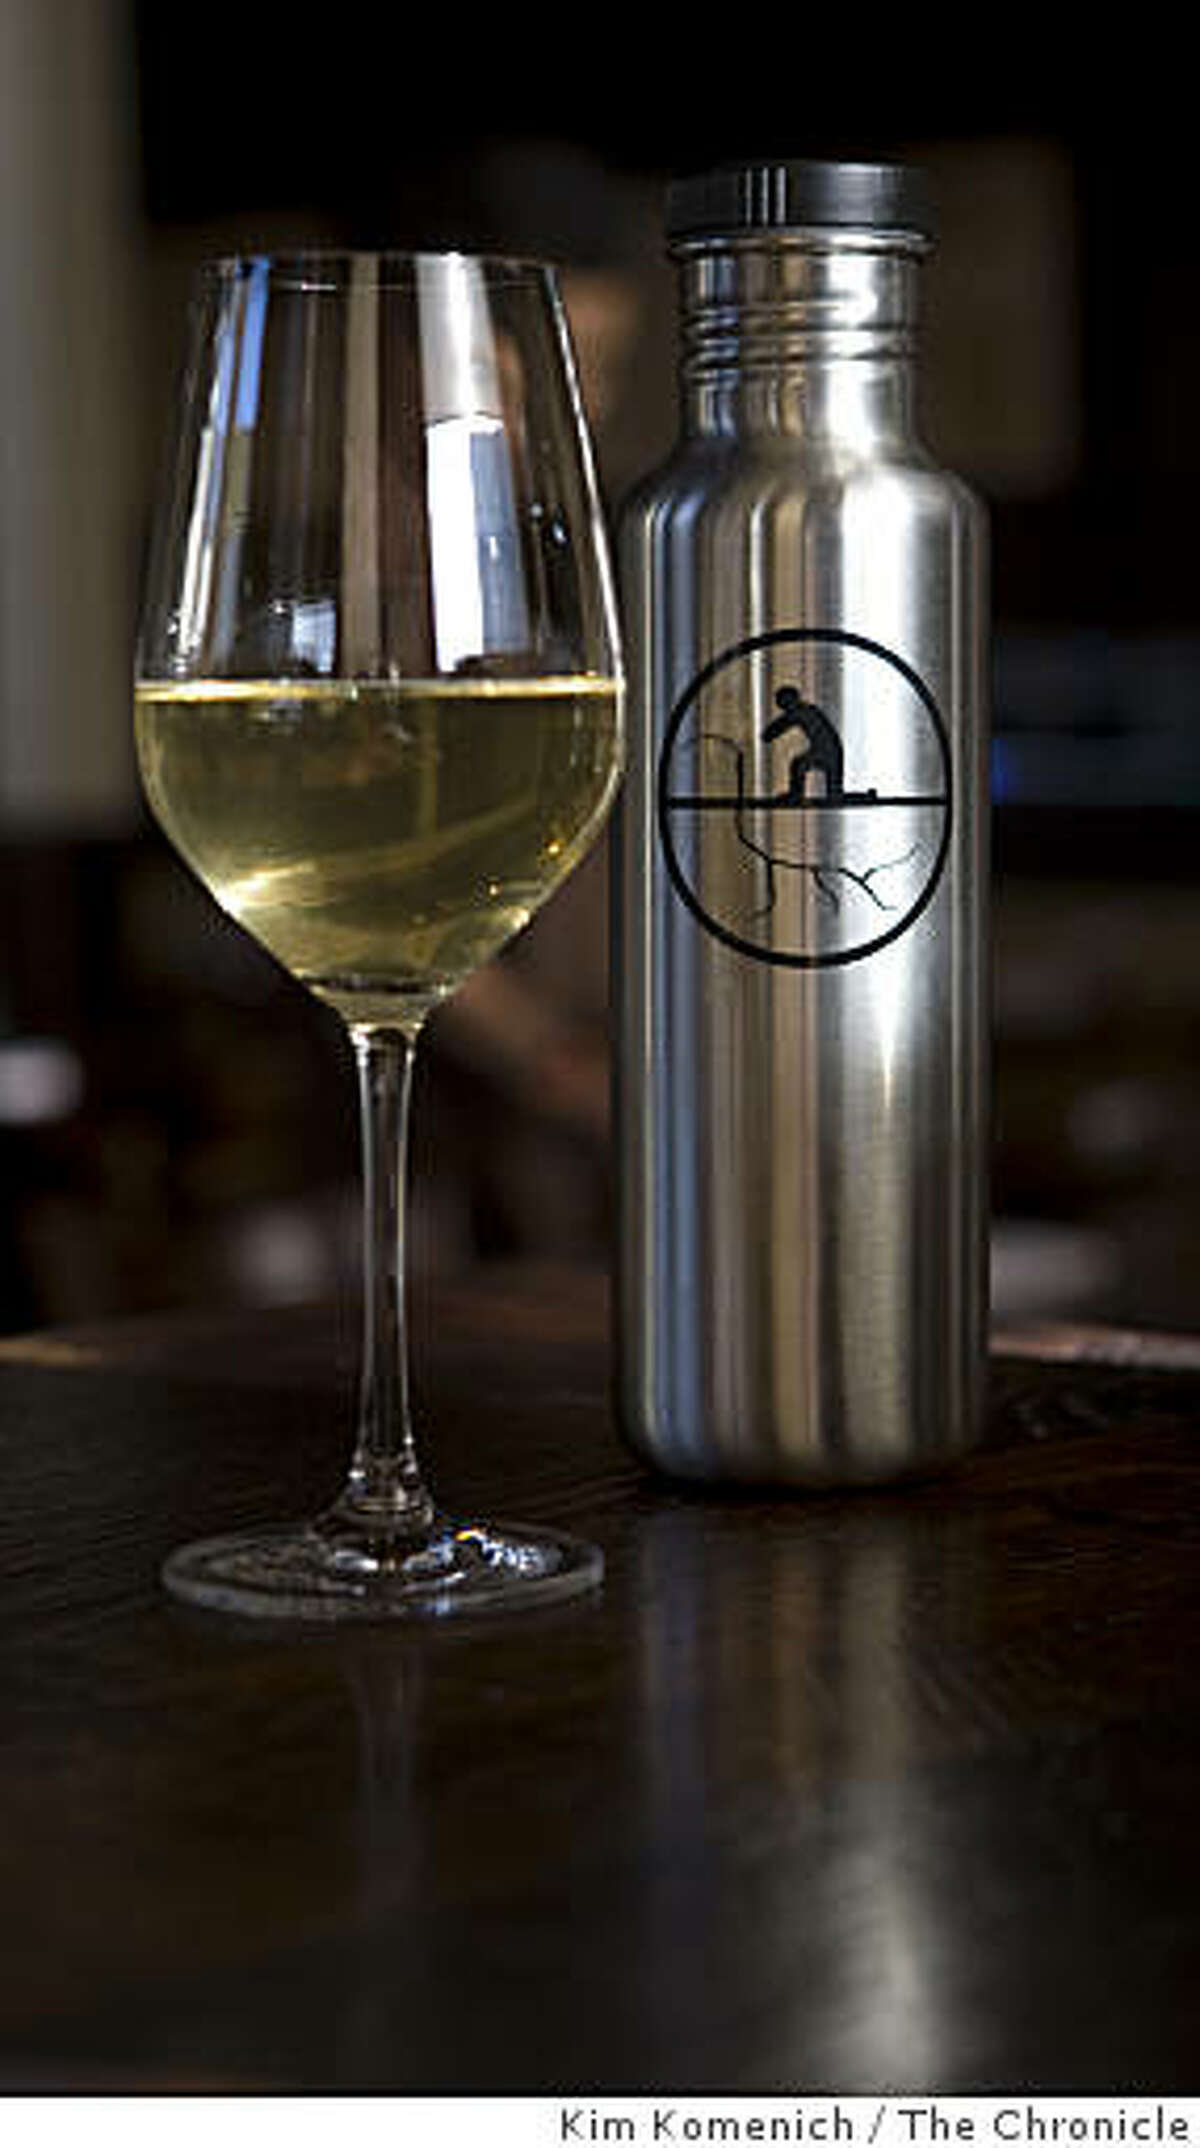 Pinot Grigio from the Natural Process Alliance is served from stainless steel